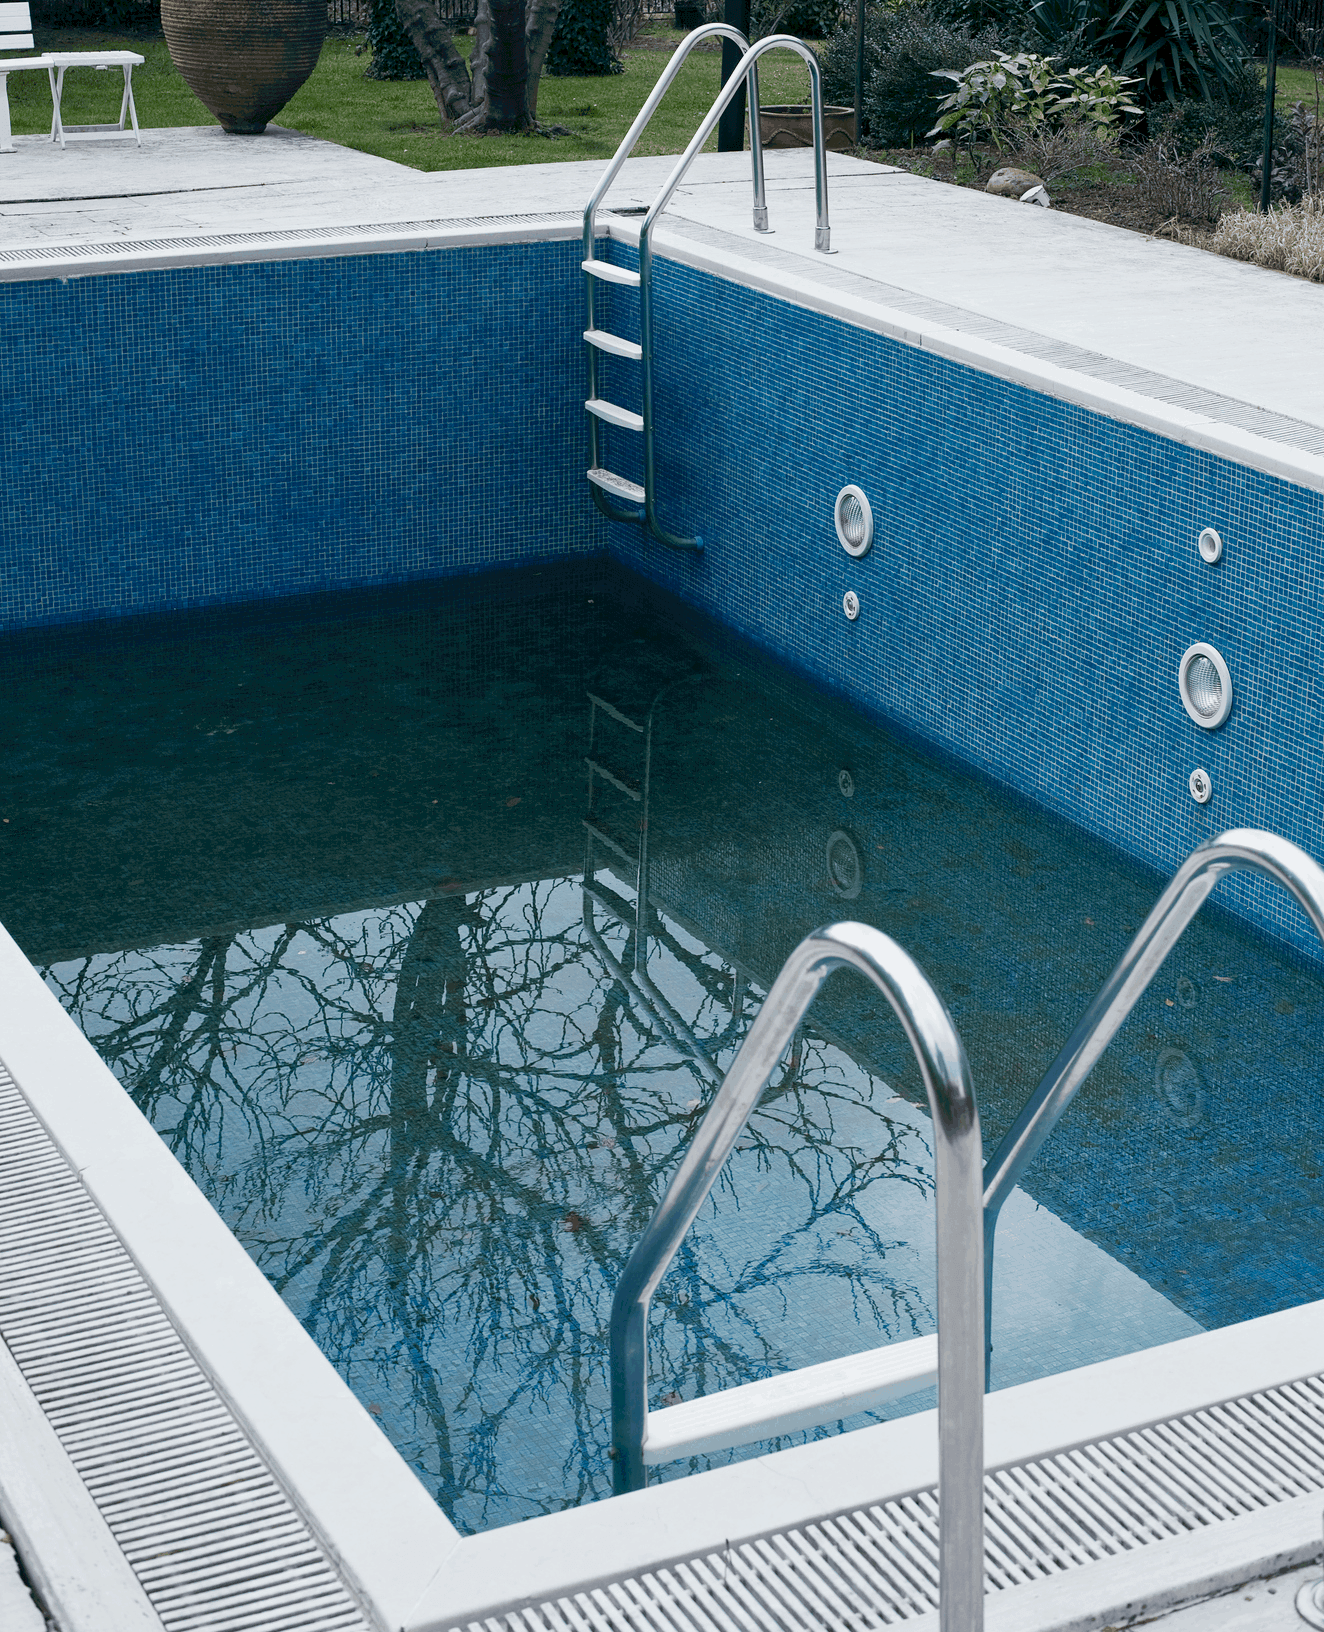 Pool leak detection Vermont South